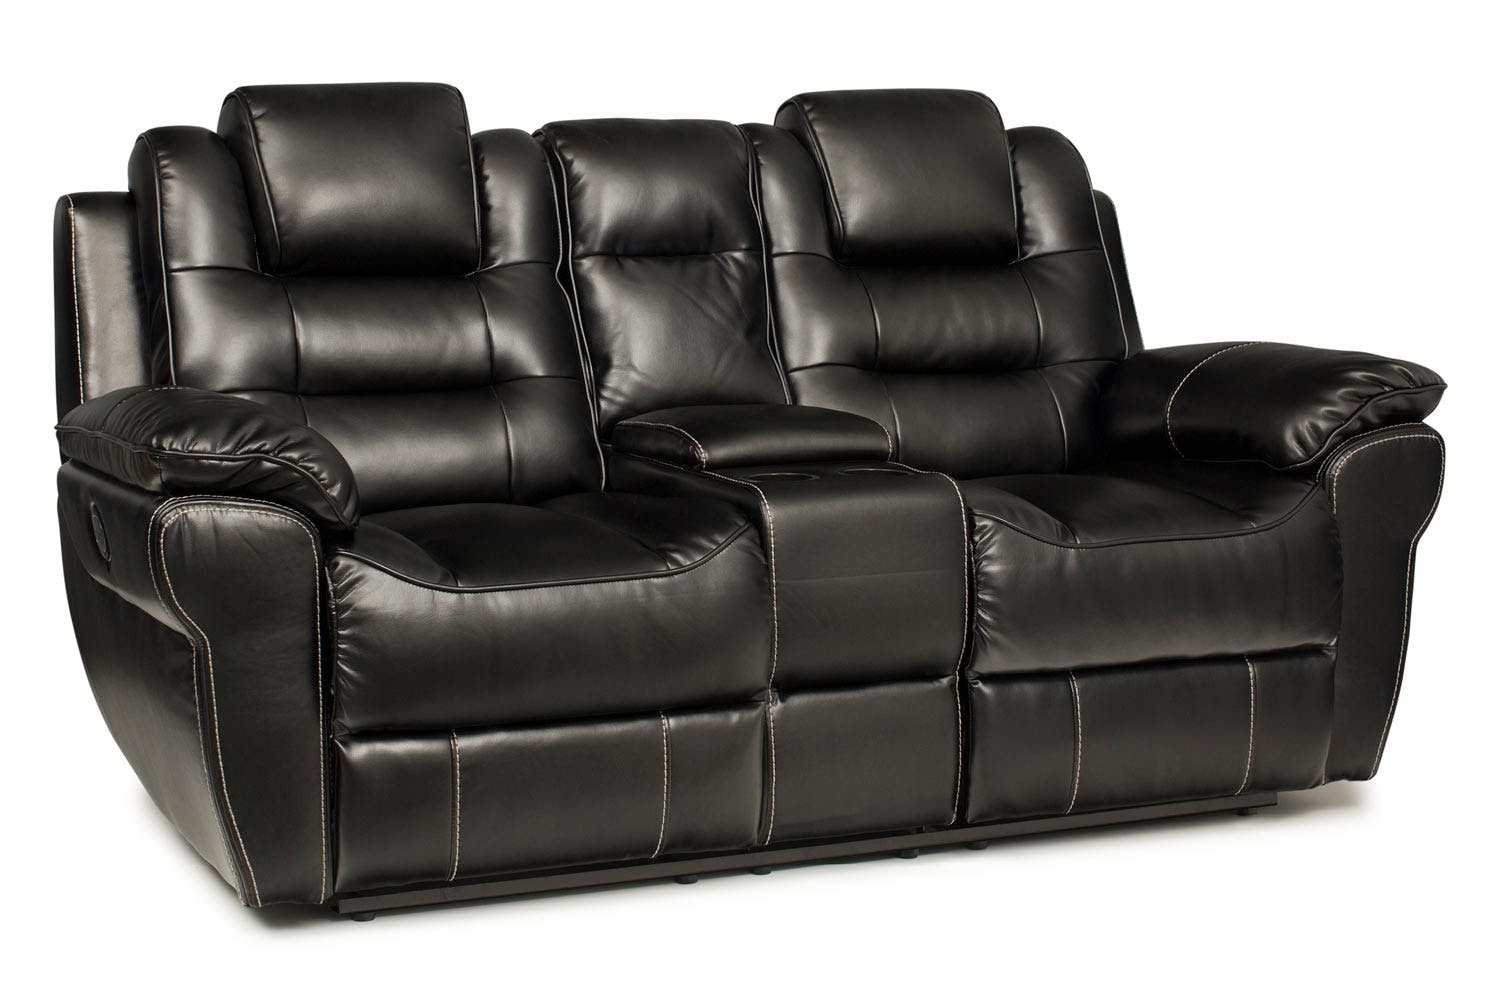 Baxter 2 Seater Electric Recliner With Console